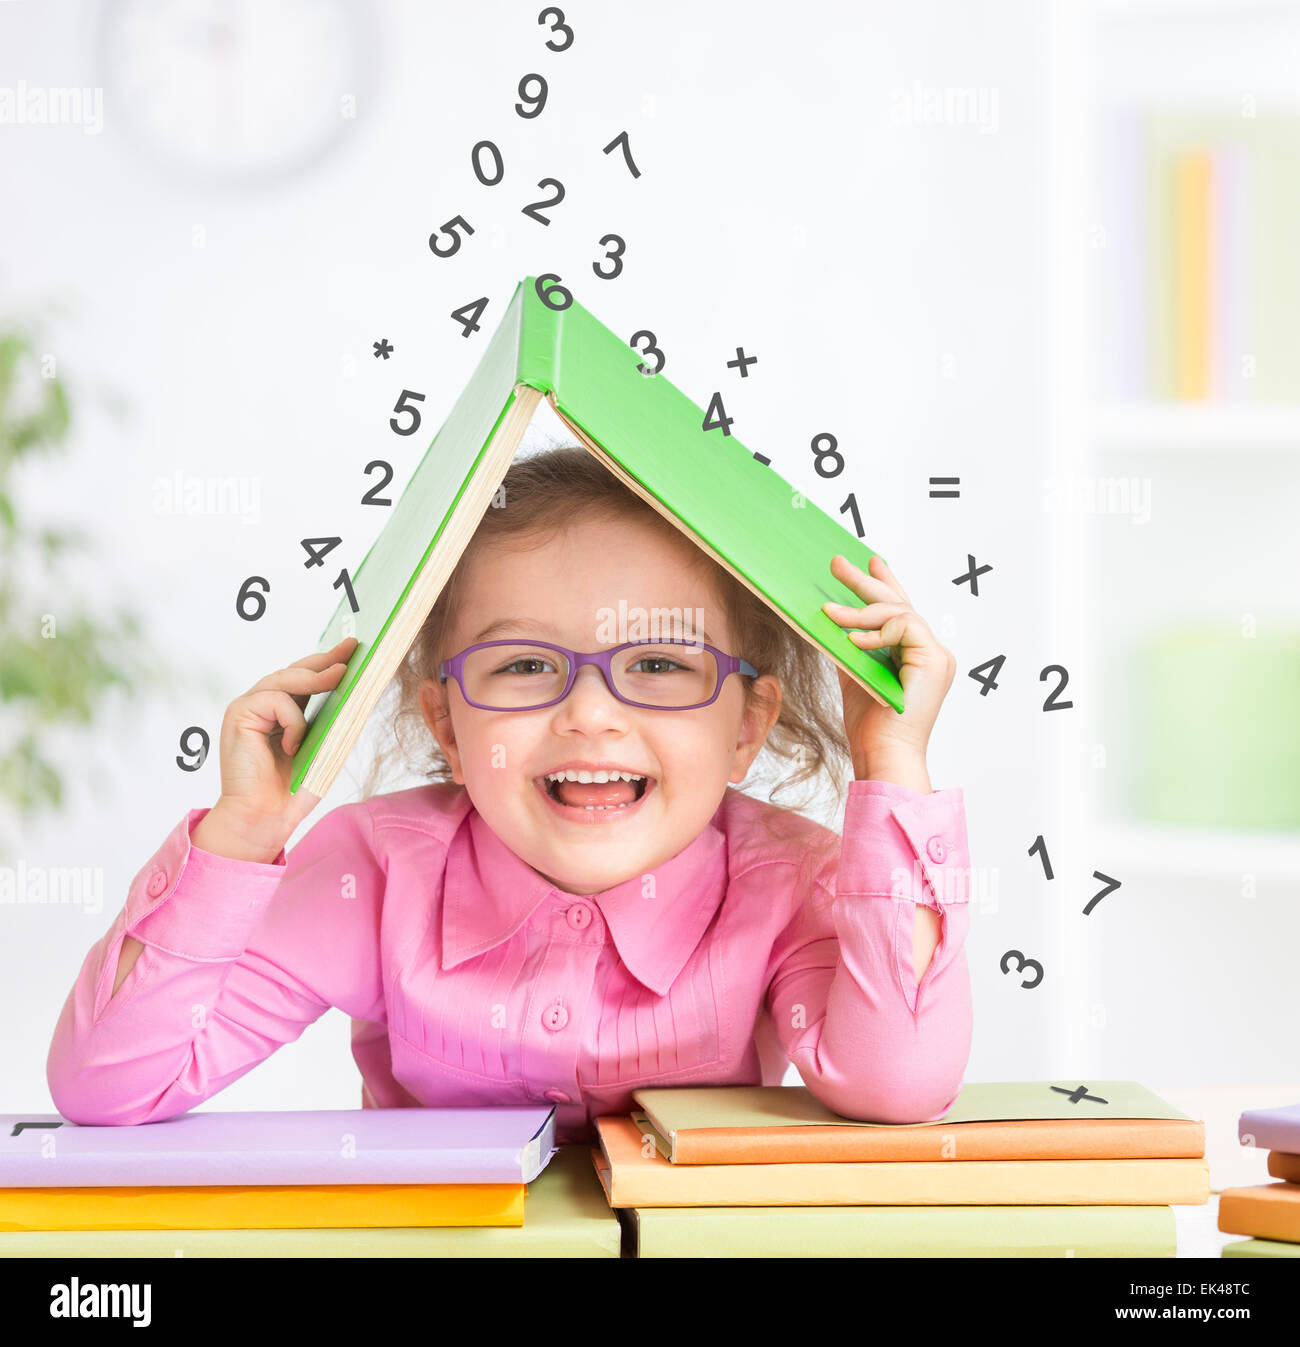 Smart kid in glasses under falling digits - Stock Image